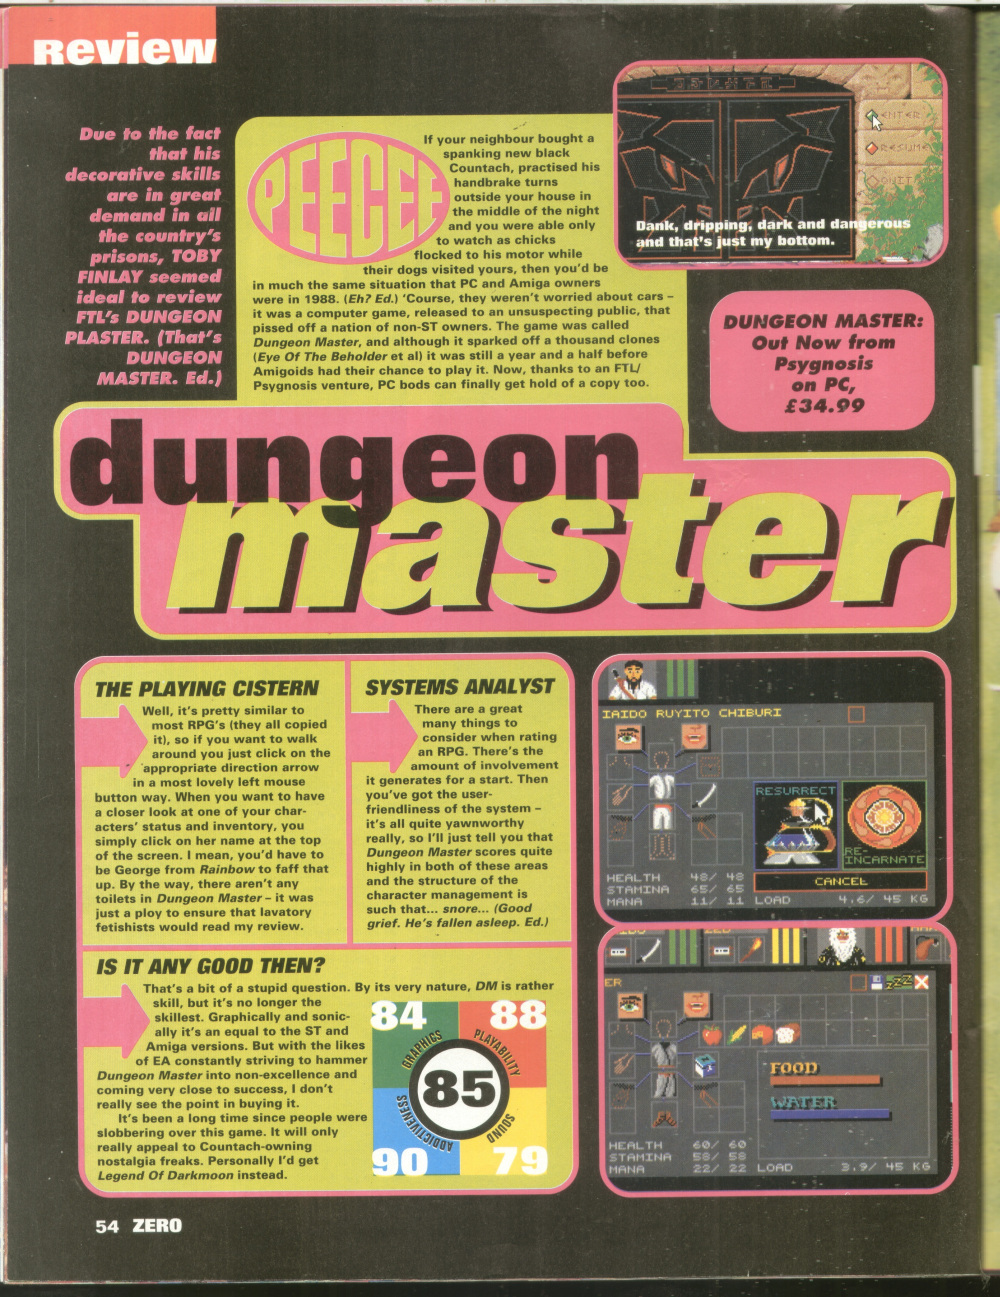 Dungeon Master for PC Review published in British magazine 'Zero', Issue #36 October 1992, Page 54